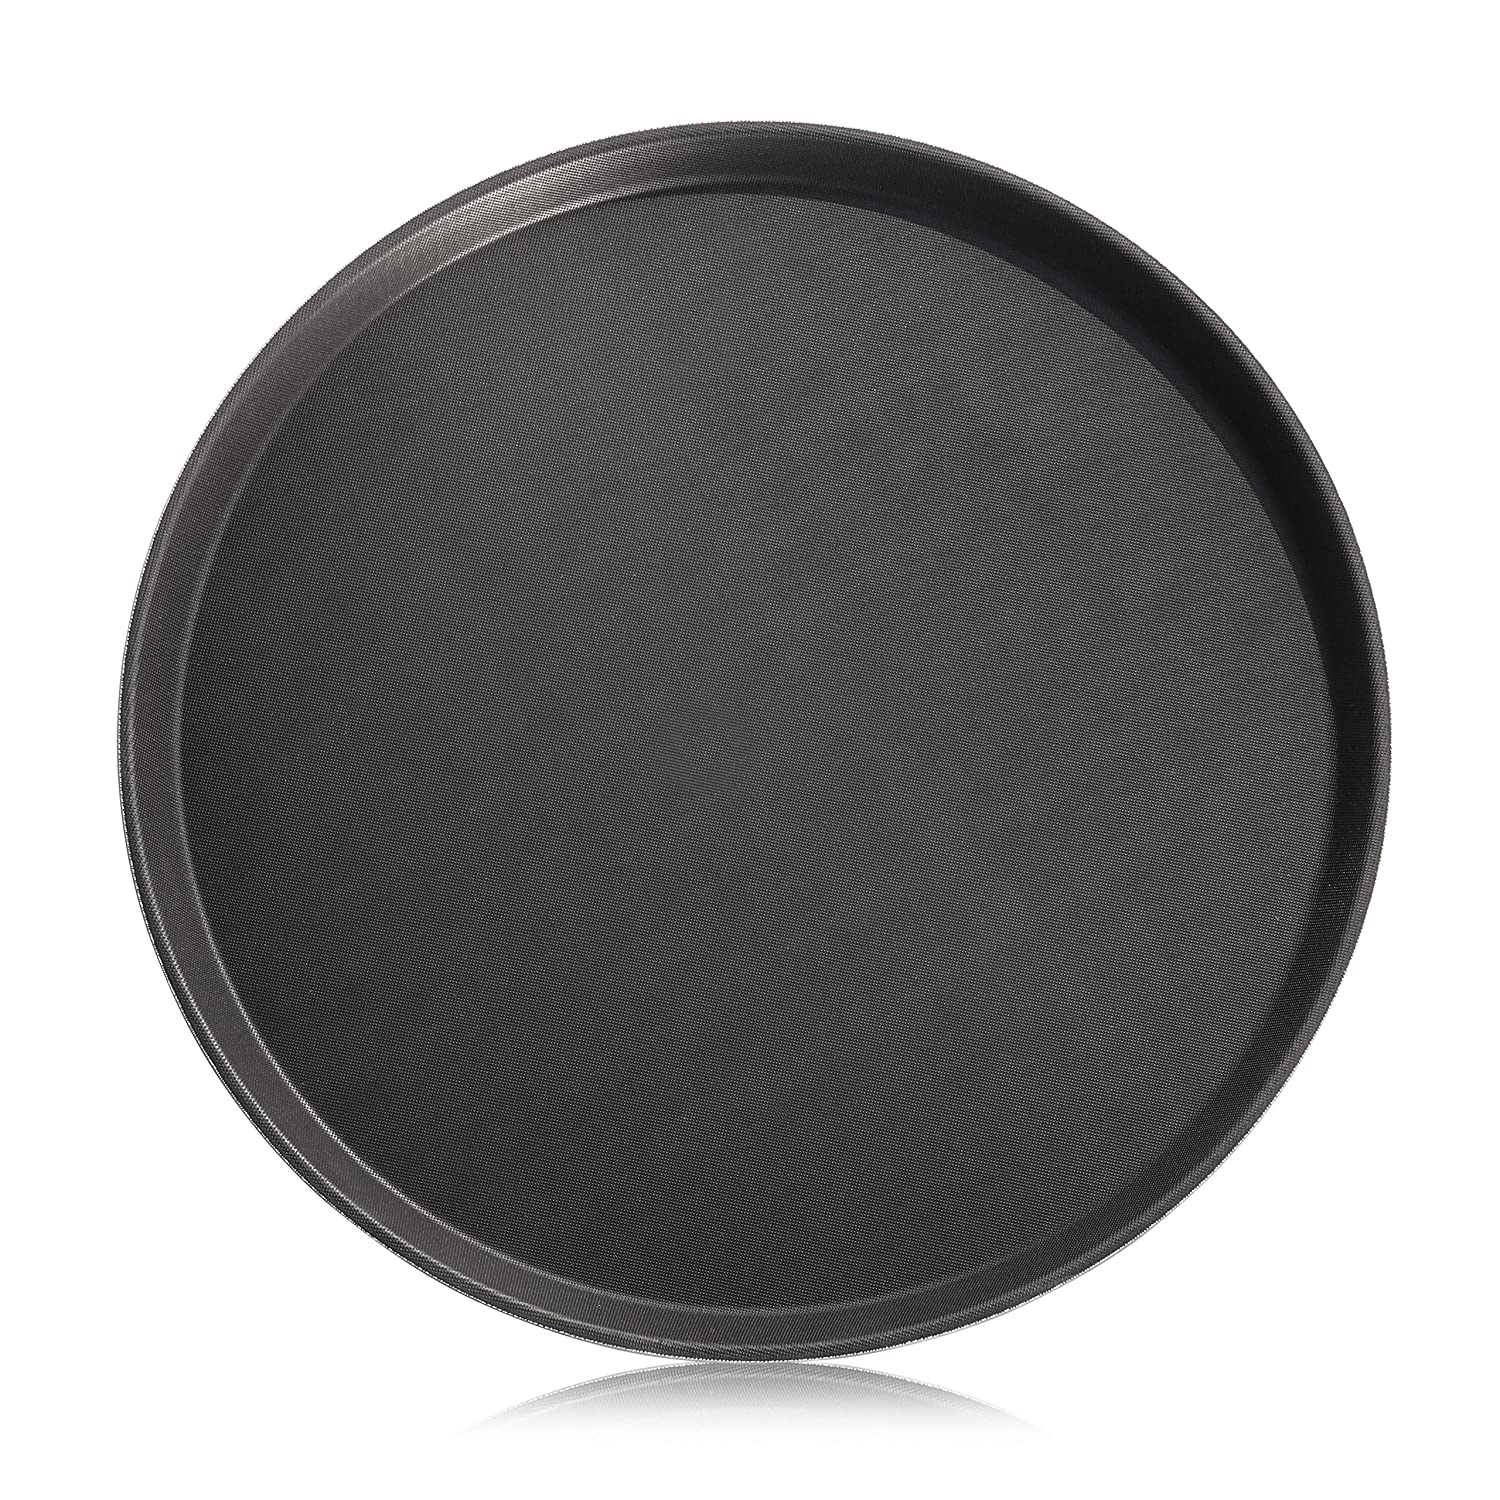 New Star Foodservice 25217 Non-Slip Tray, Plastic, Rubber Lined, Round, 16-Inch Dia, Black